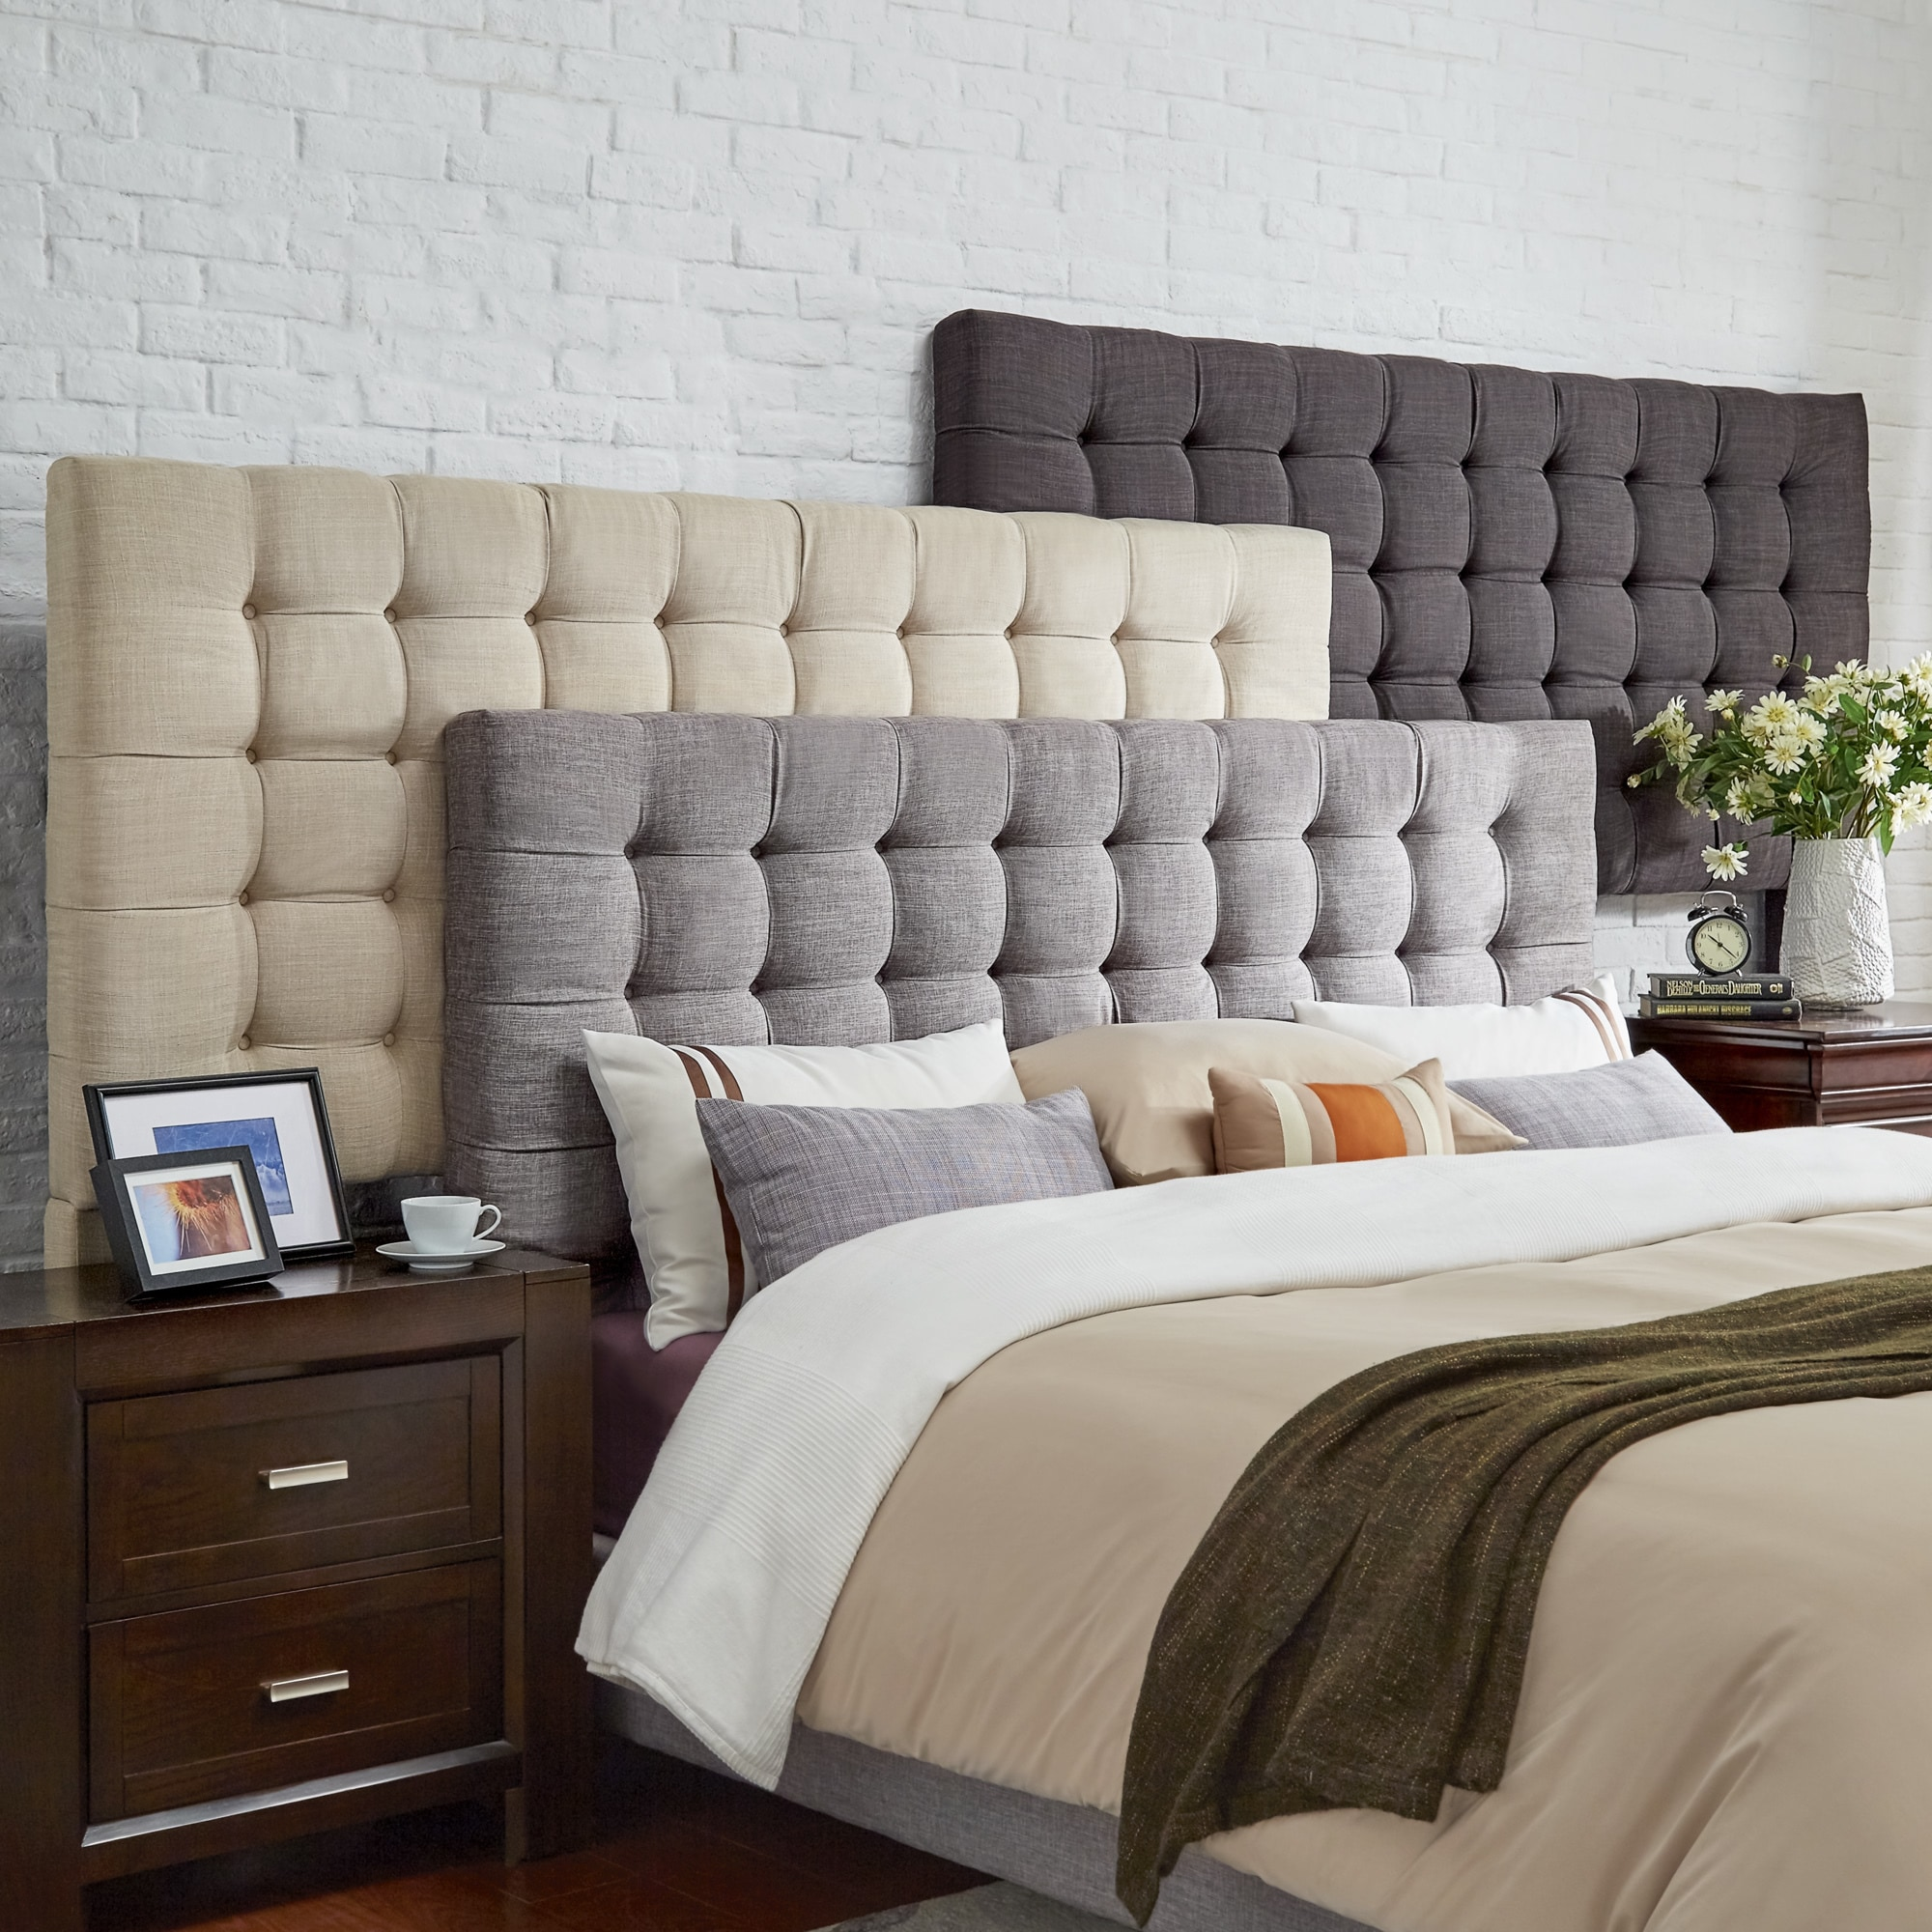 Briella Button Tufted Linen Upholstered Headboard Inspire Q Modern On Sale Overstock 13620207